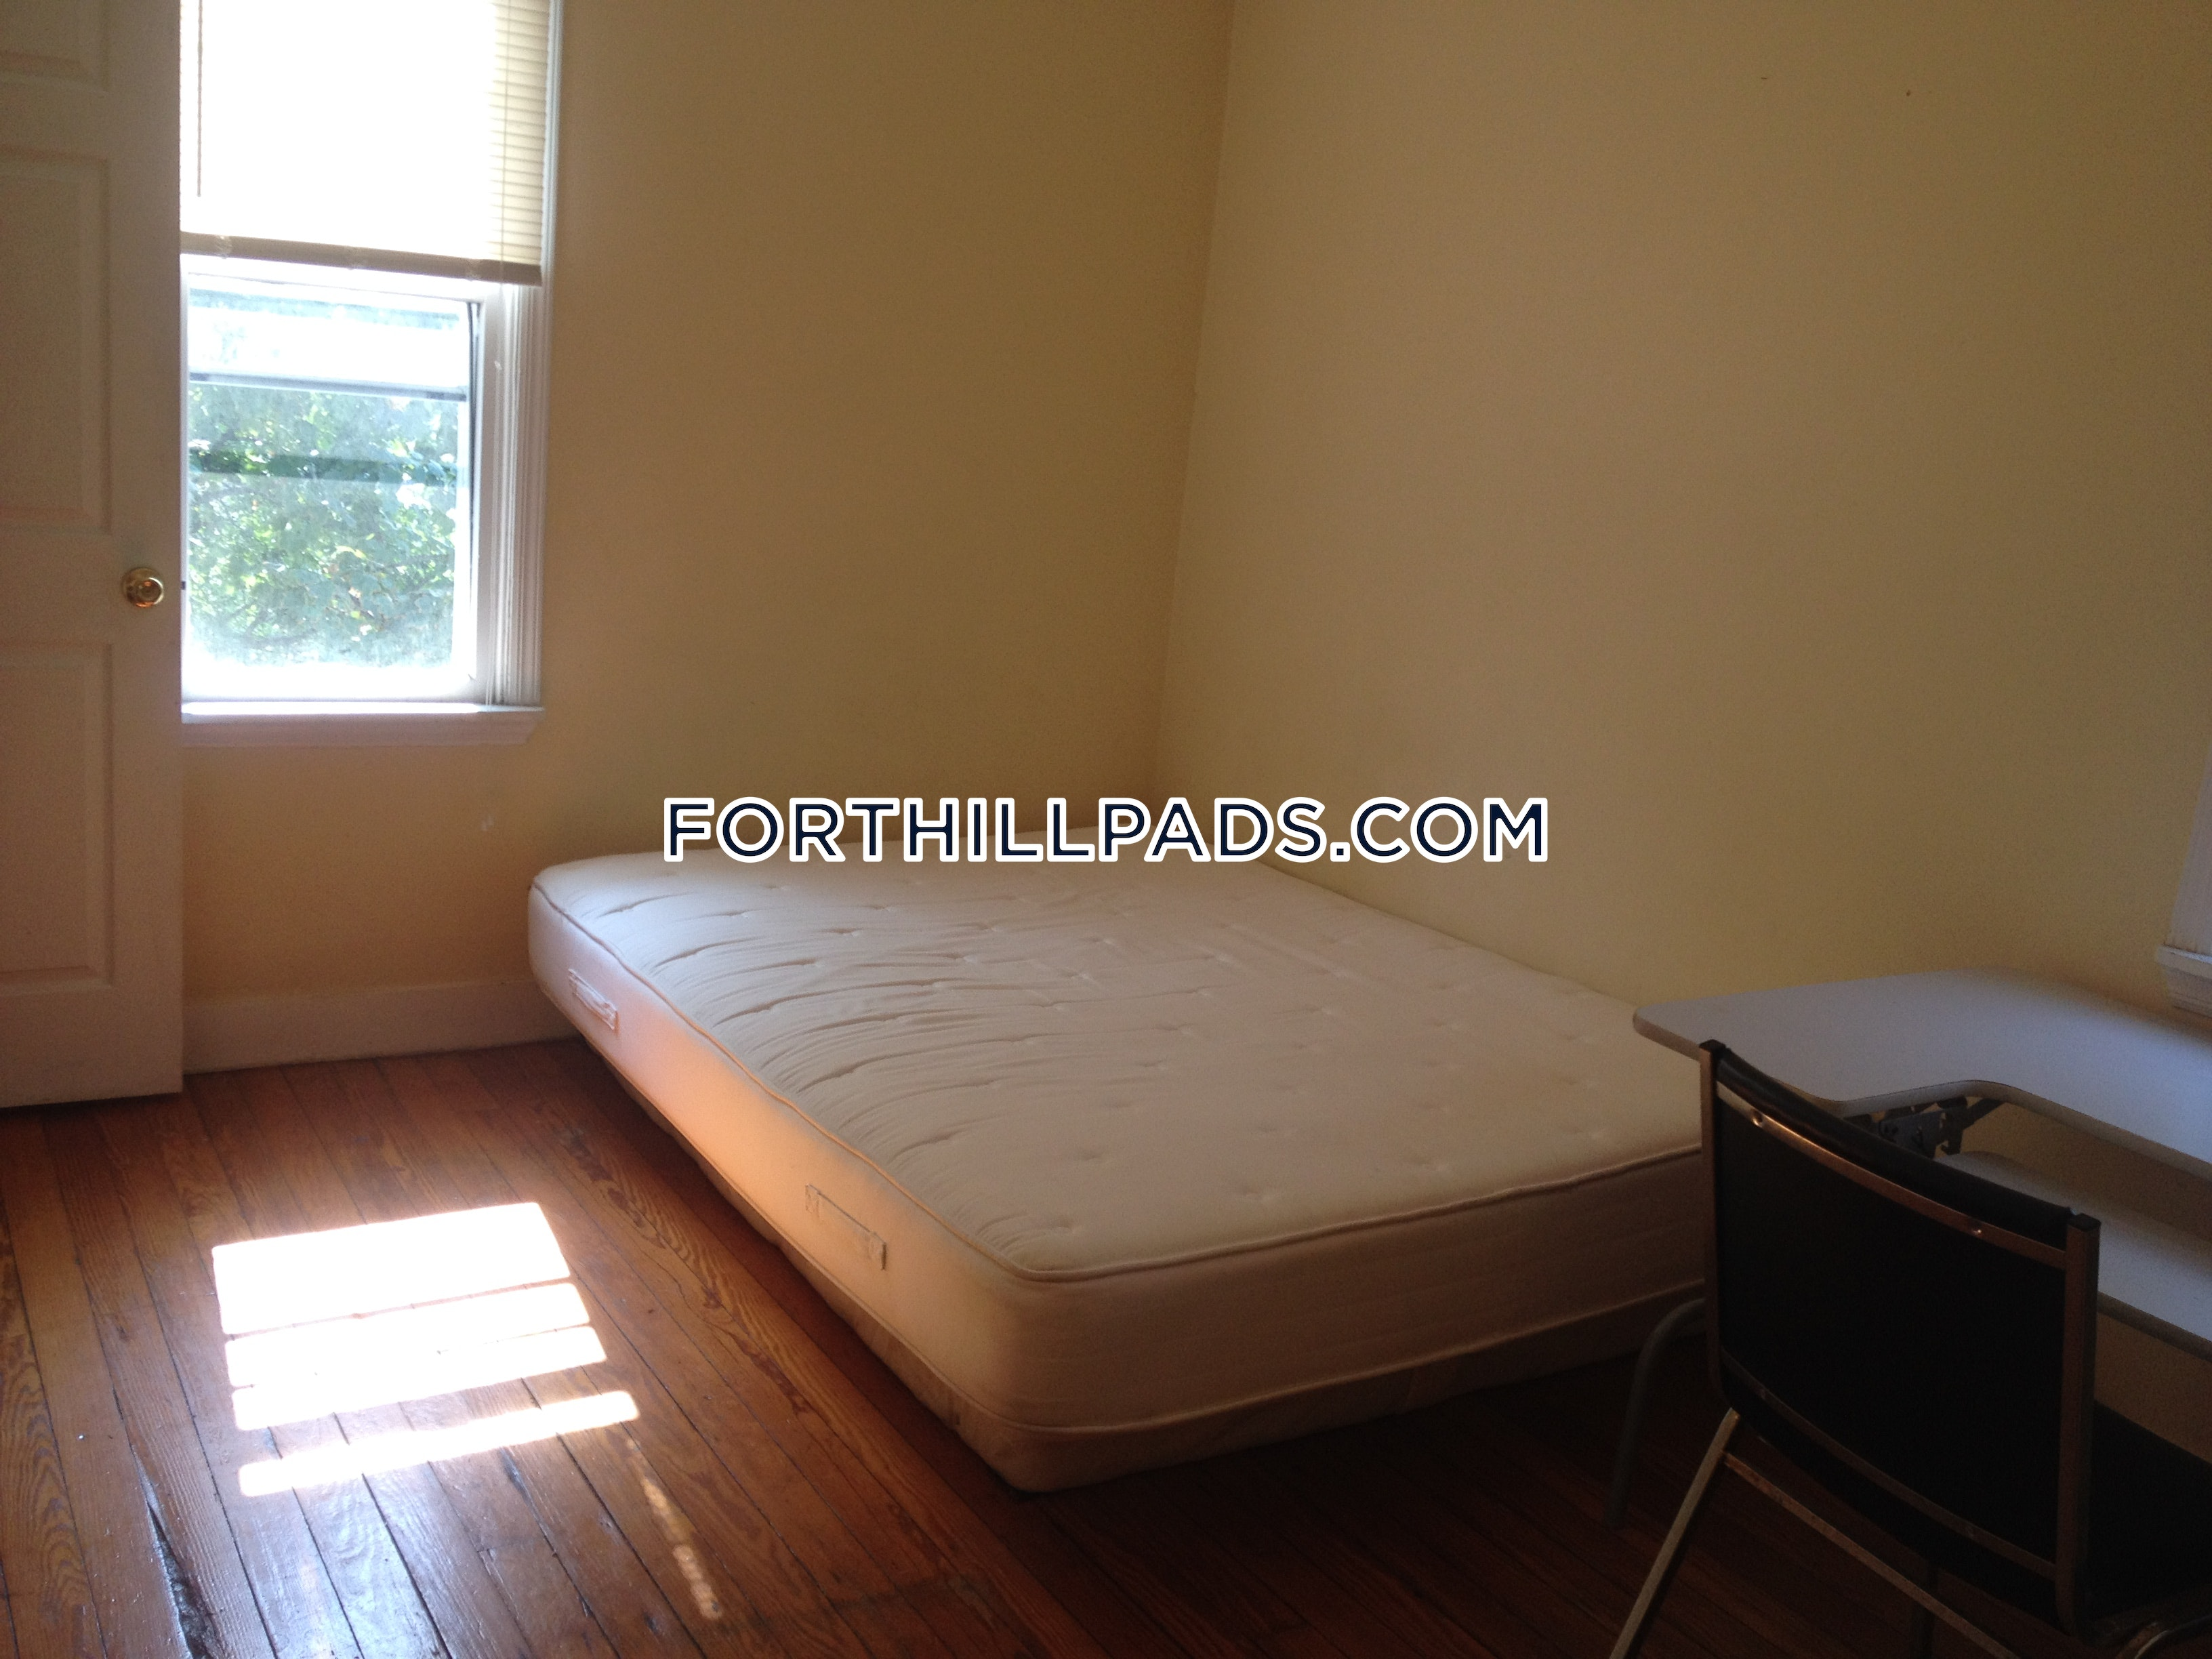 Fort hill apartments 3 beds 1 bath boston fort hill 2800 3 beds 1 bath boston fort hill 2800 amipublicfo Choice Image